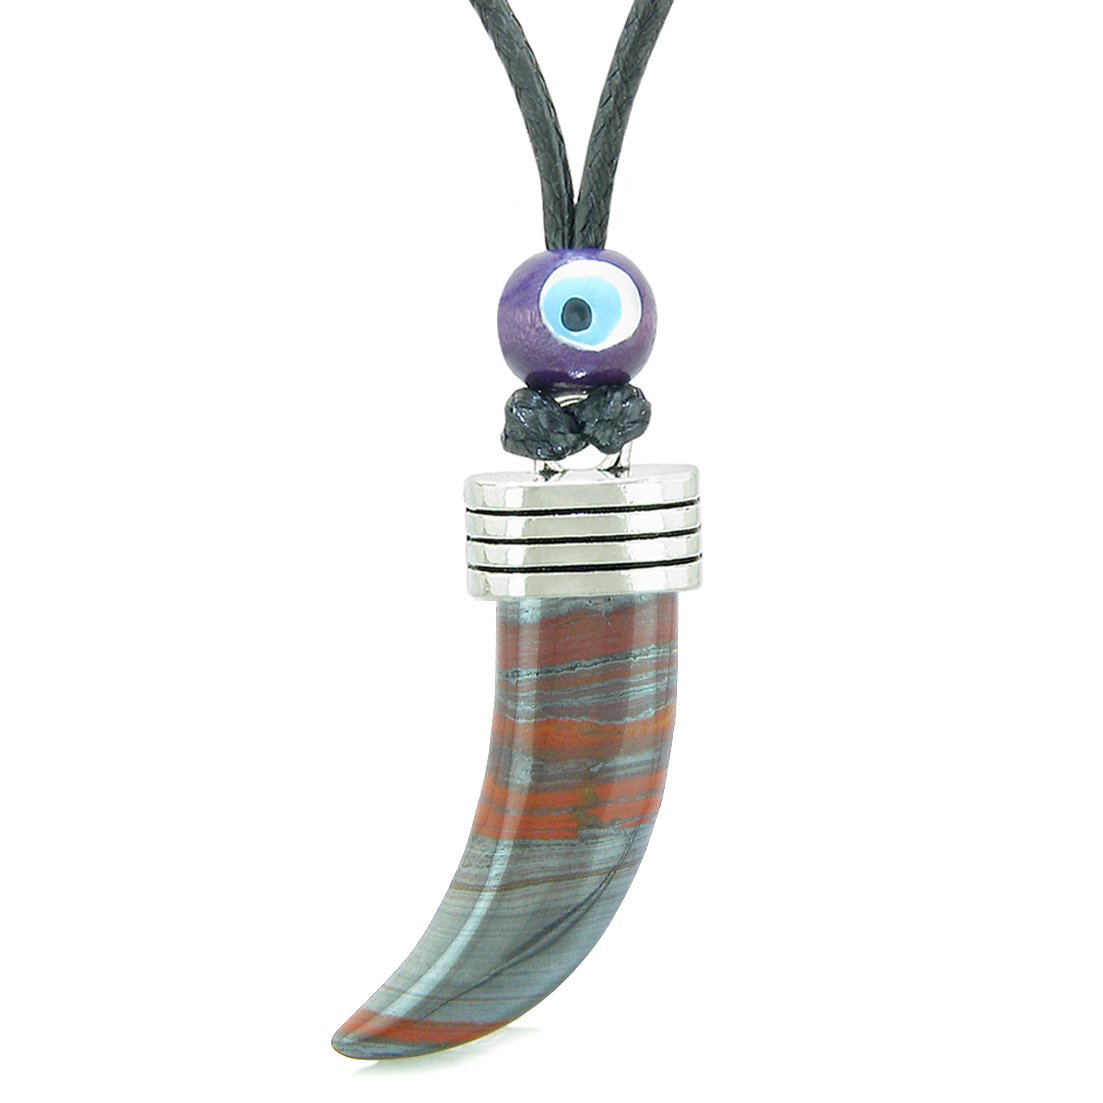 Italian Horn Pepper Protection Powers Tooth Amulet Dragon Eye Hematite Iron Lucky Charm Adjustable Necklace